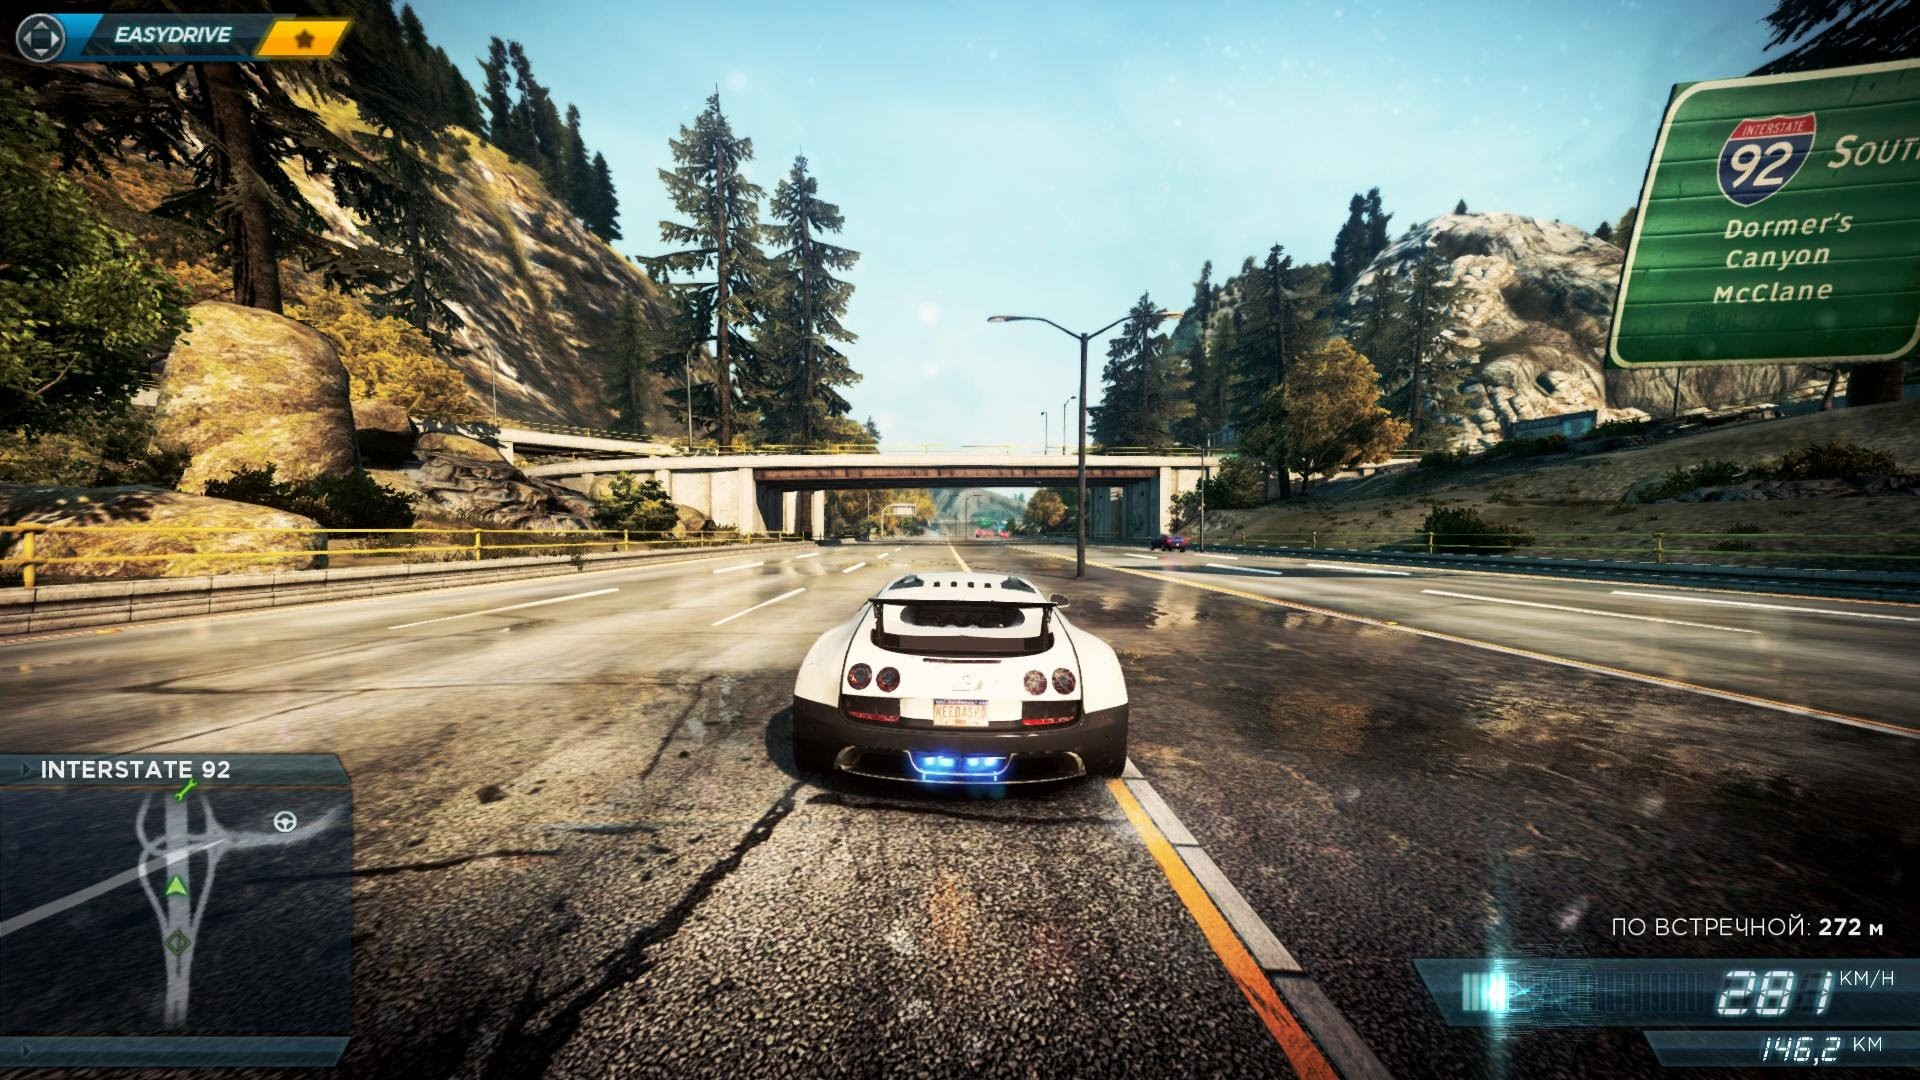 NFS Most Wanted (2012) Nvidia GeForce GT640 4GB Max Settings Full  HD